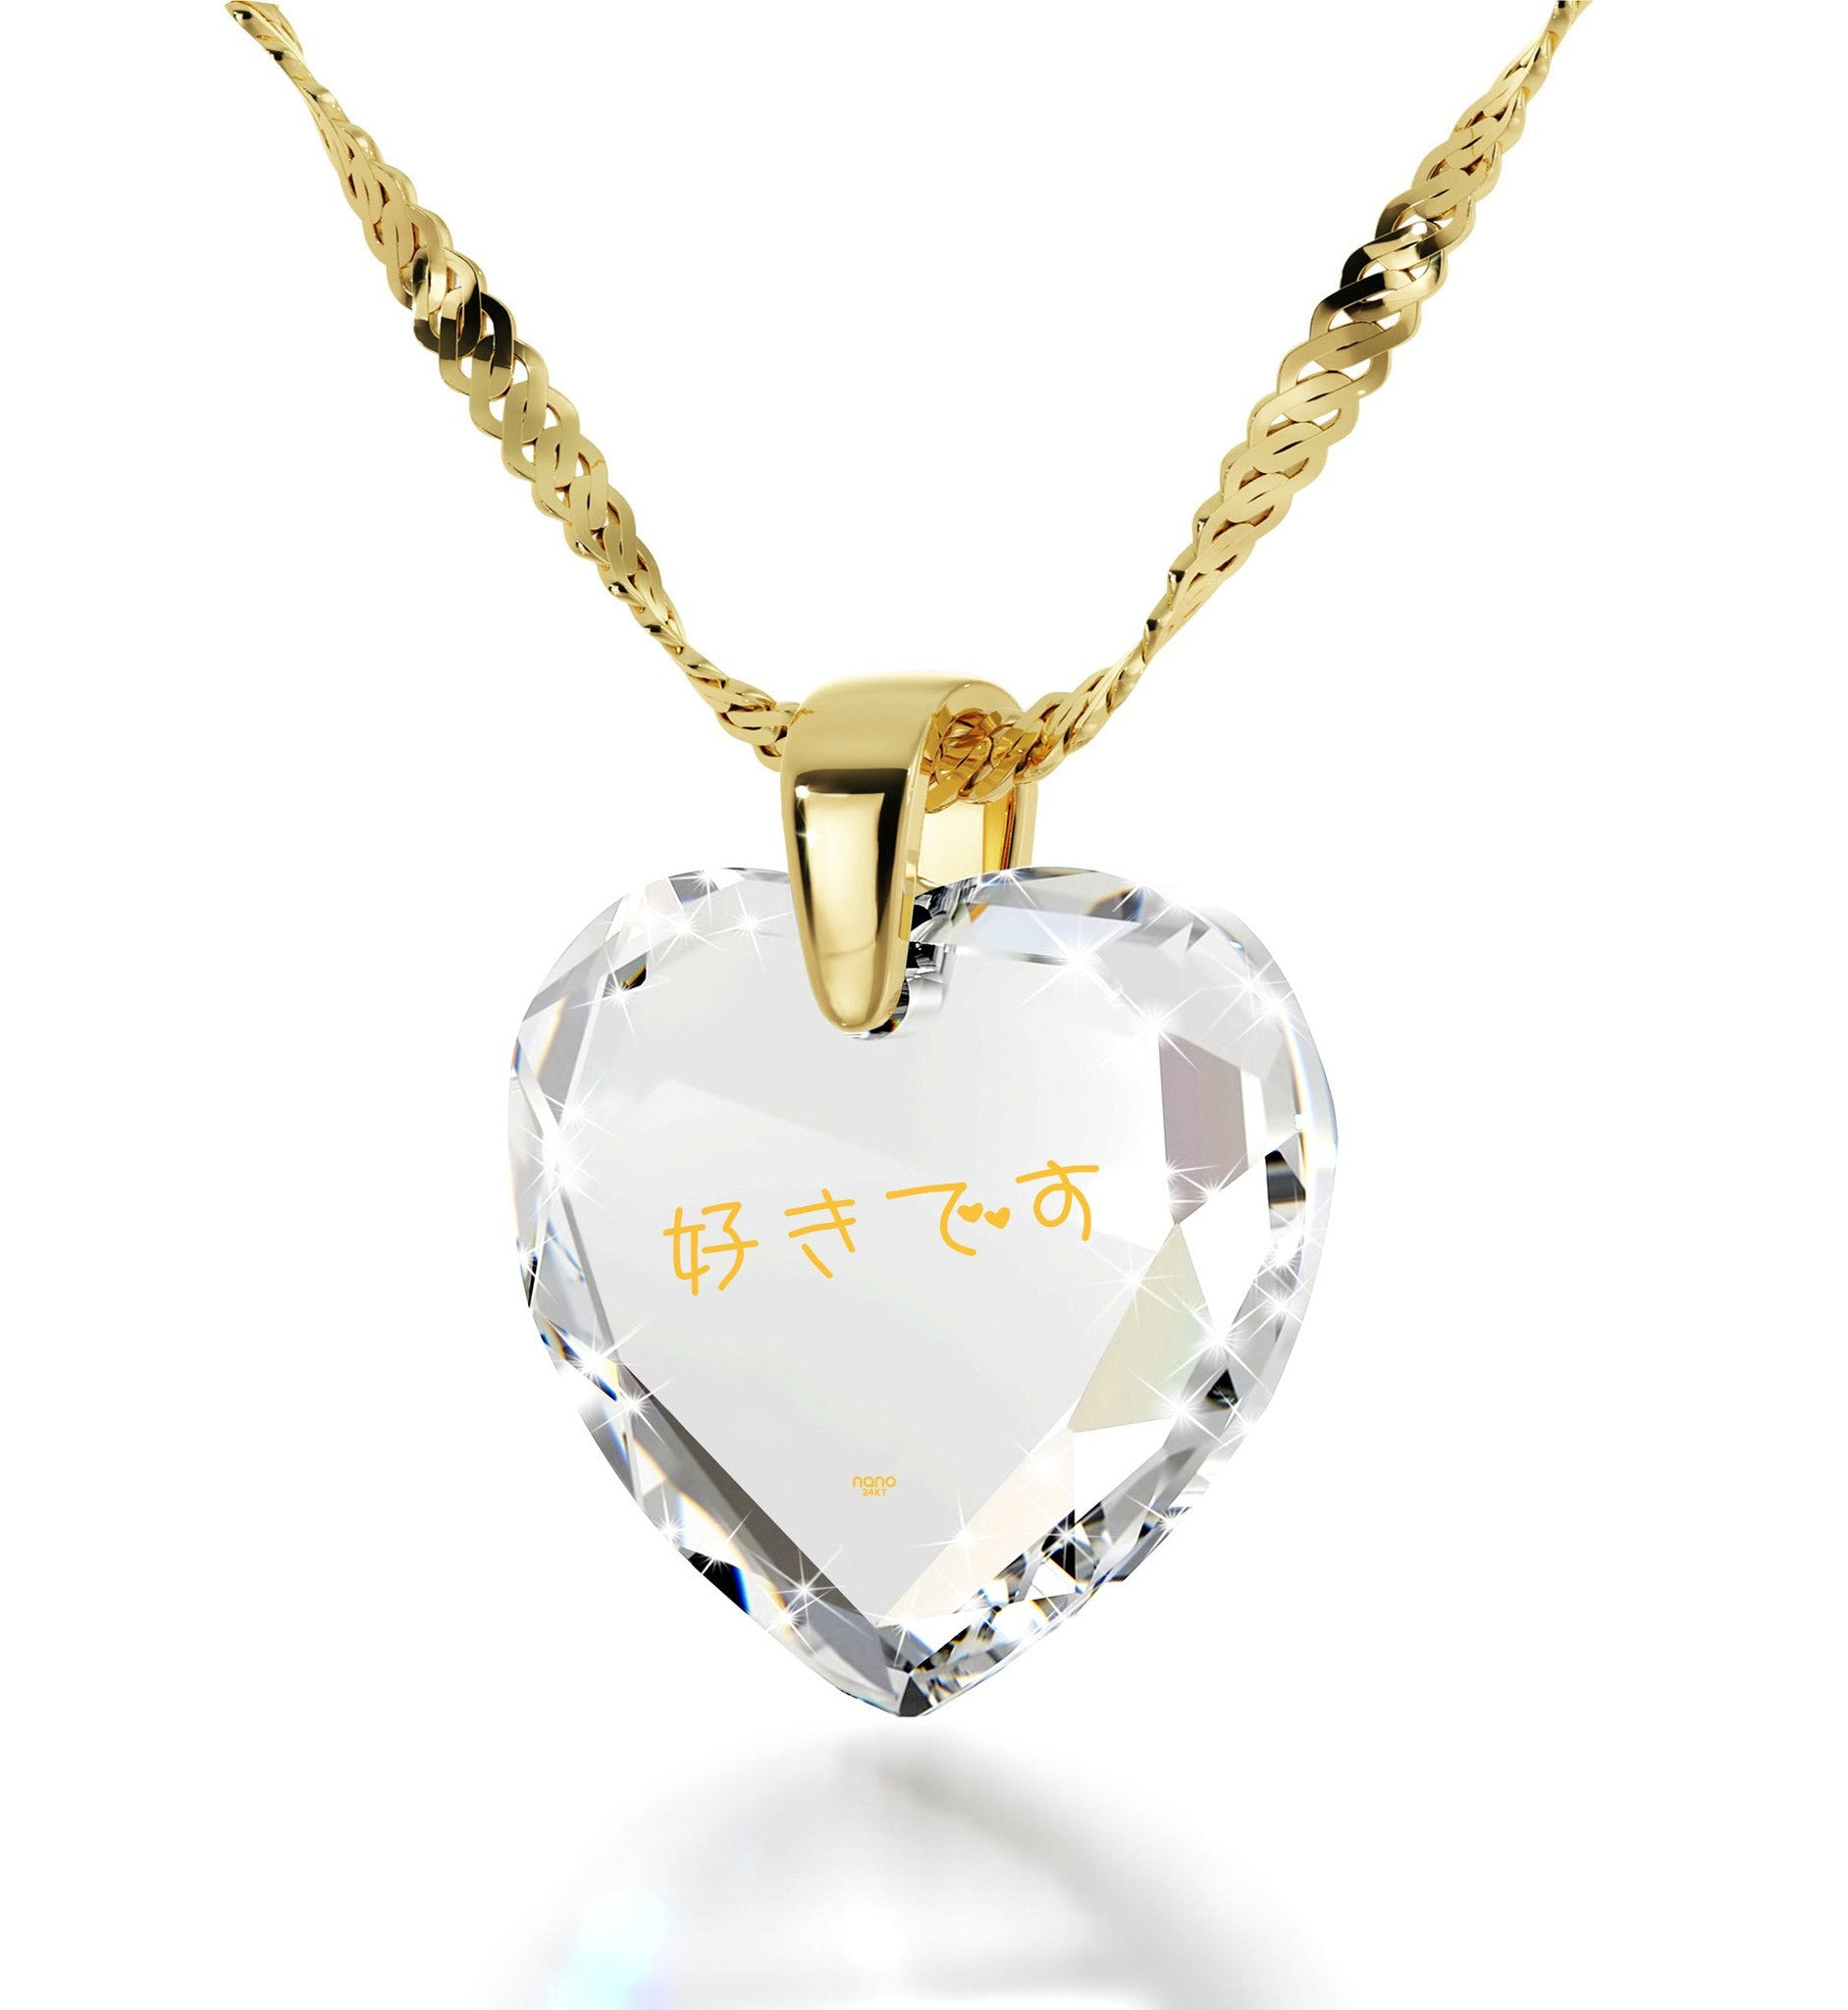 "Good Christmas Presents,""I Love You"" in Japanese Written In 24K Gold, Best Gift for Girlfriend"